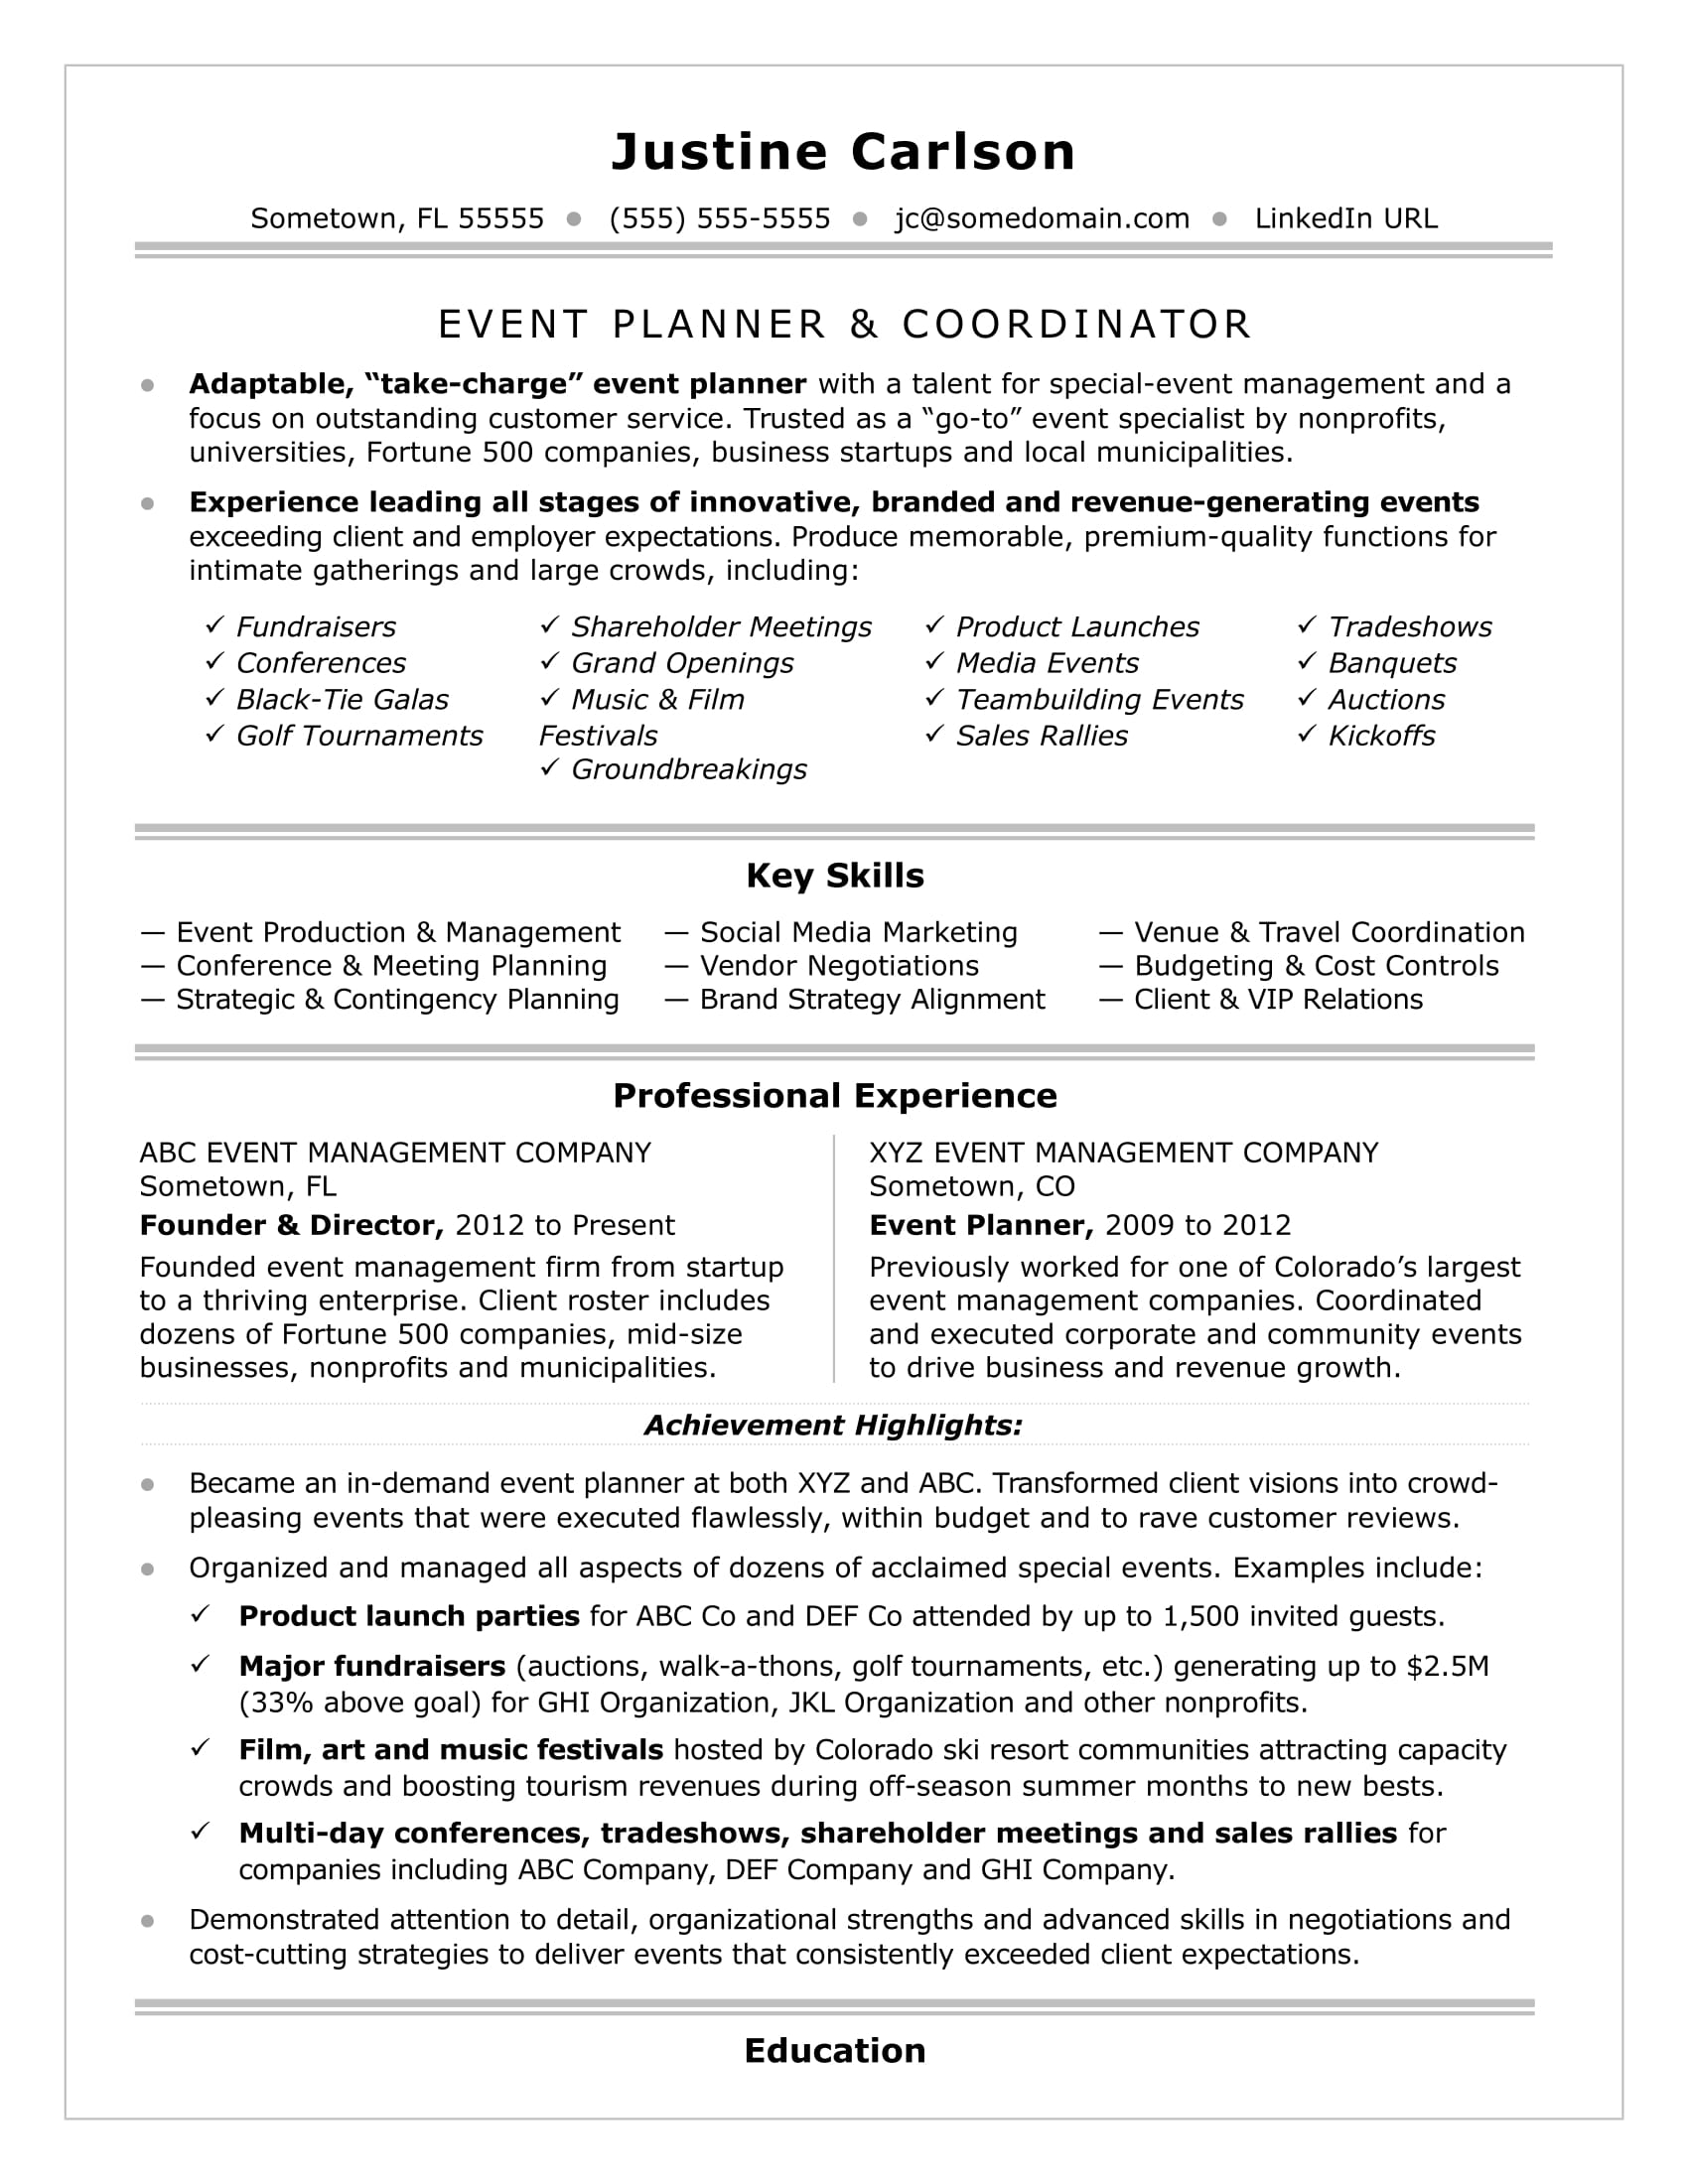 resume Event Producer Resume event coordinator resume sample monster com sample